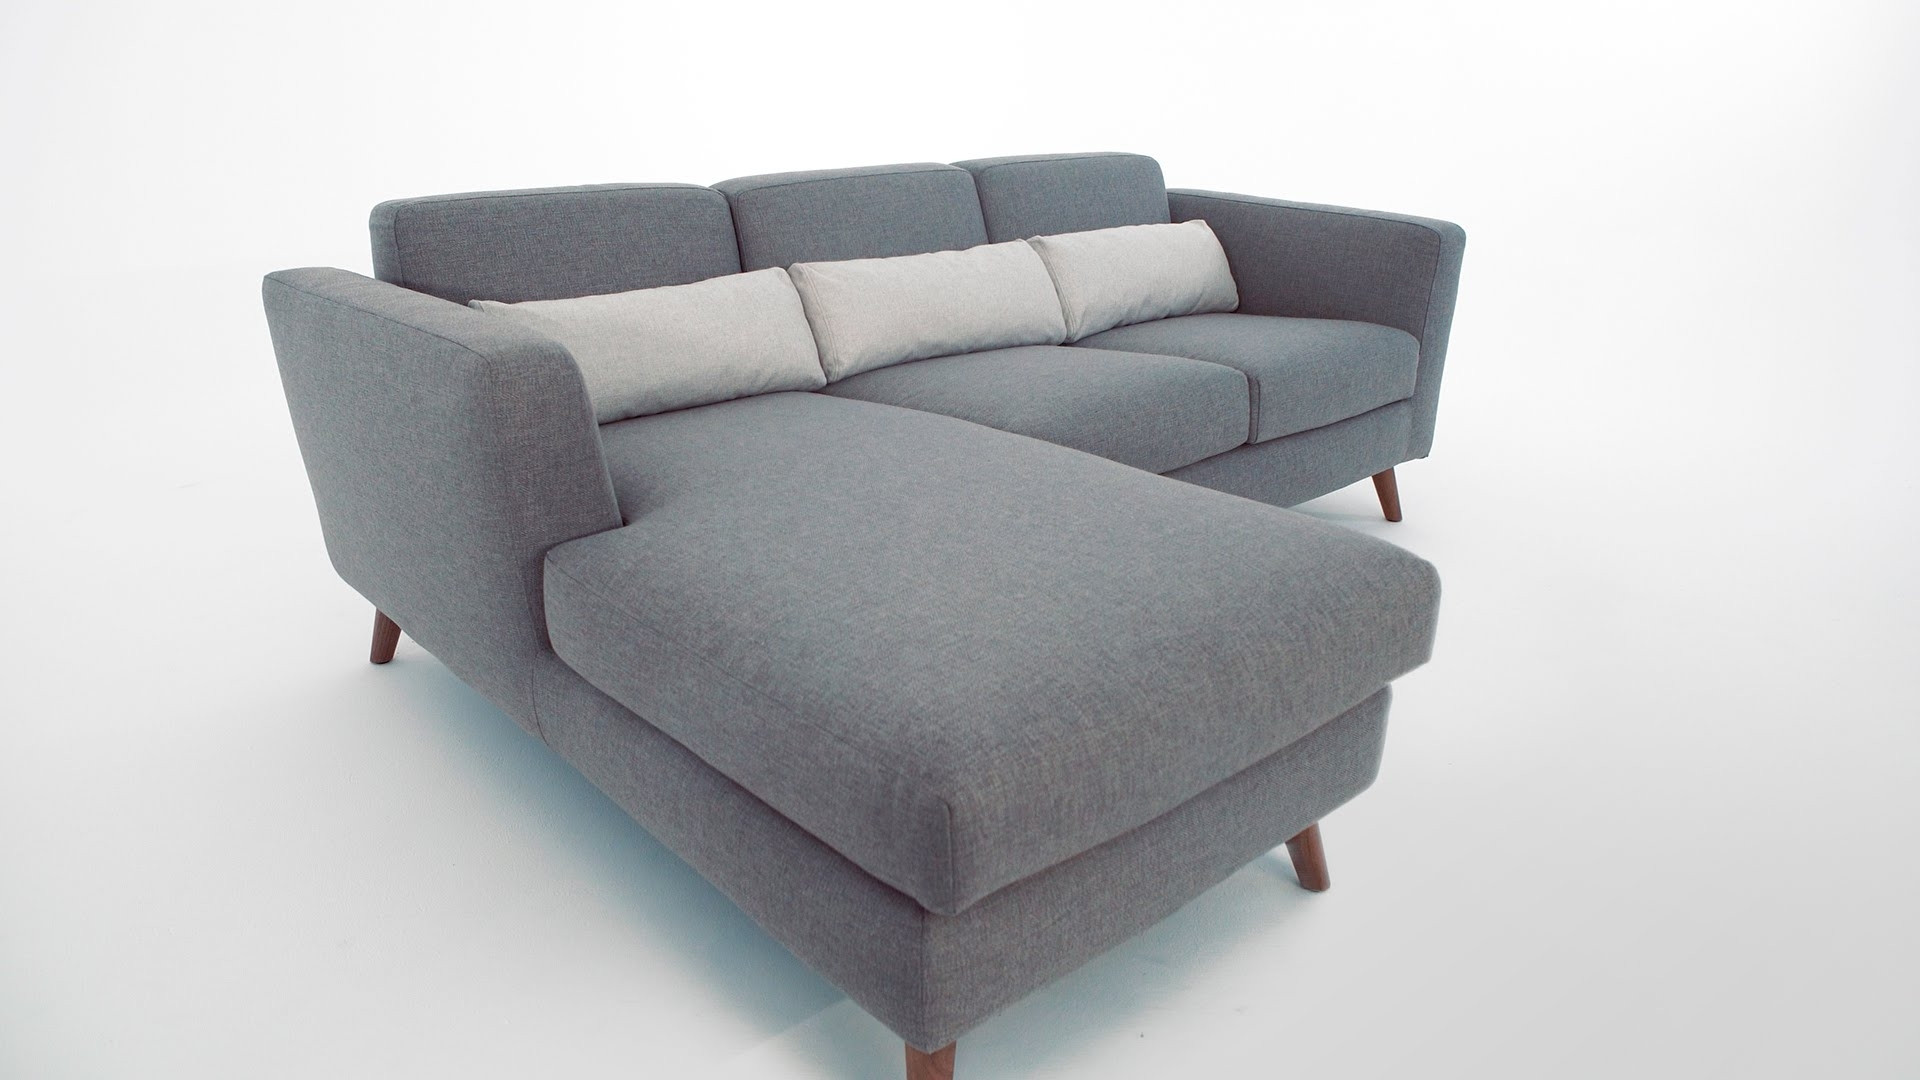 Structube Sectional Sofas Intended For Preferred The Taylor Sectional Sofa – Structube – Youtube (View 8 of 20)